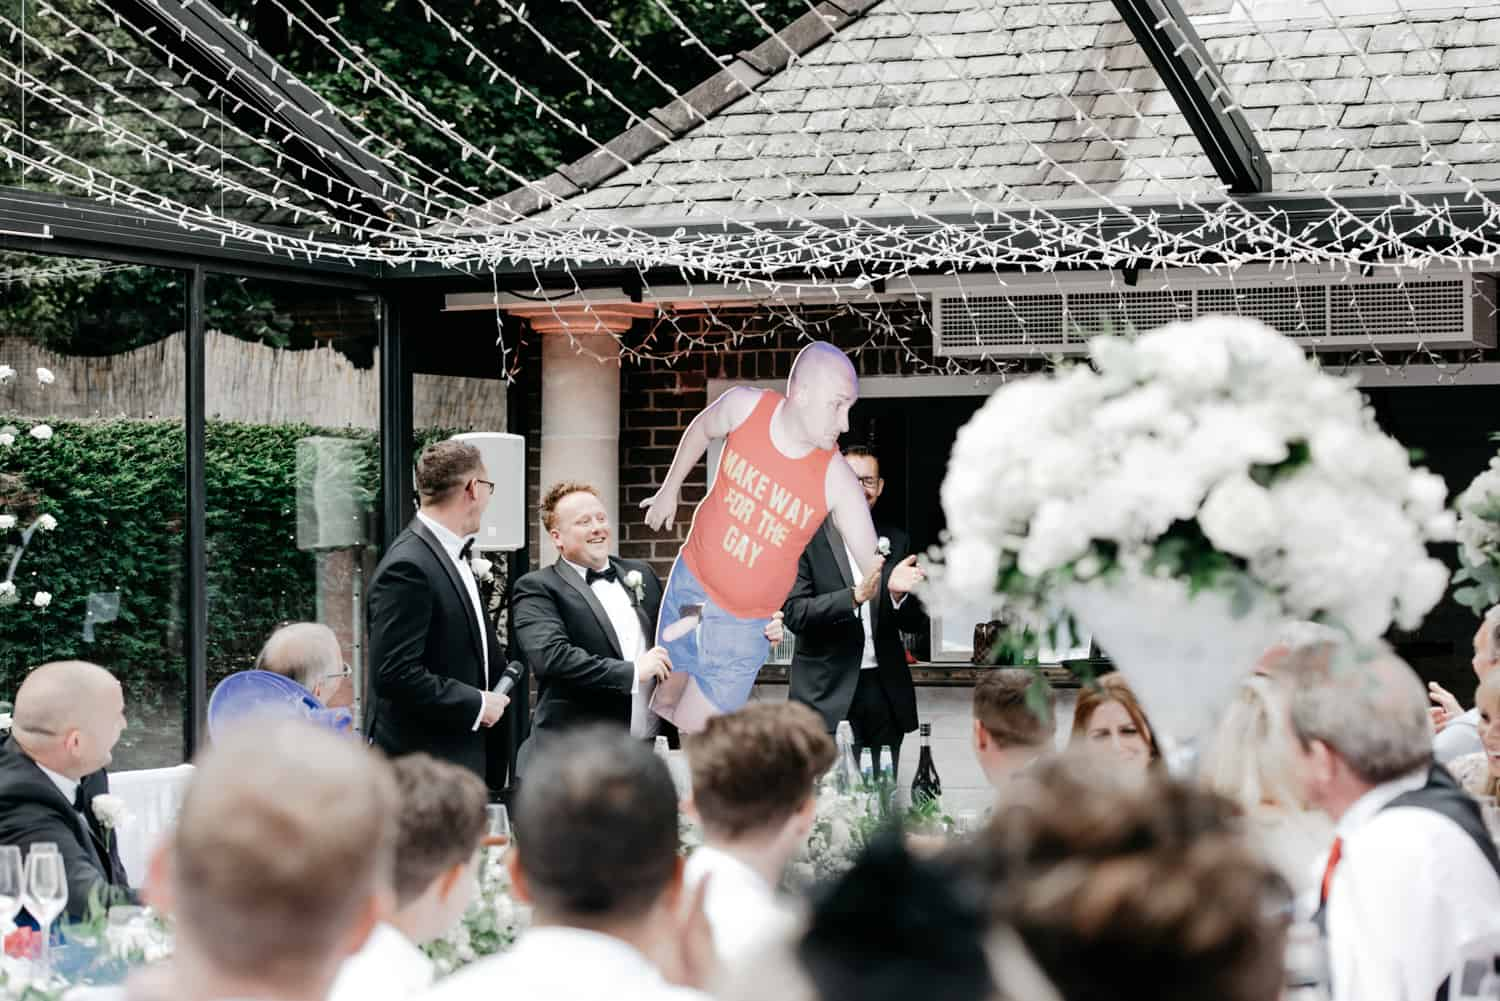 more embarrassment for the groom